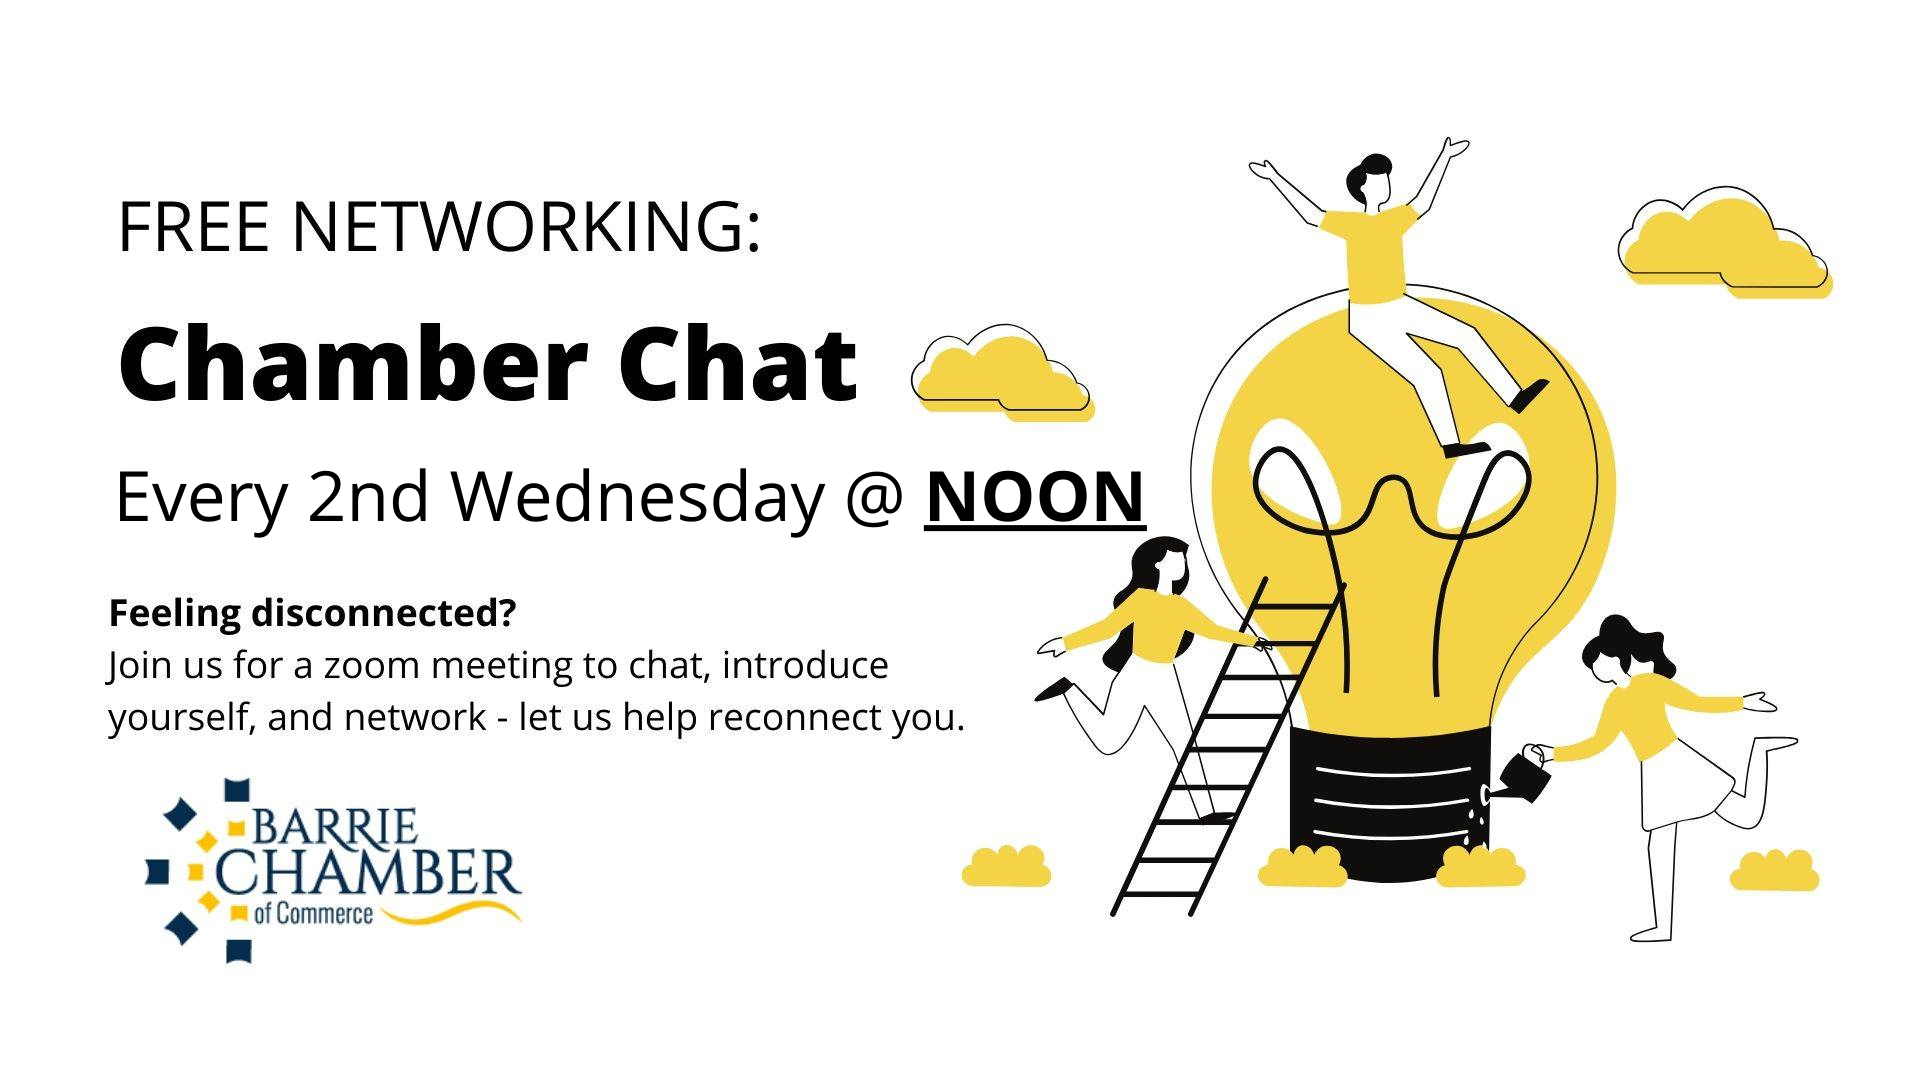 Chamber Chat - Every 2nd Wednesday @ NOON